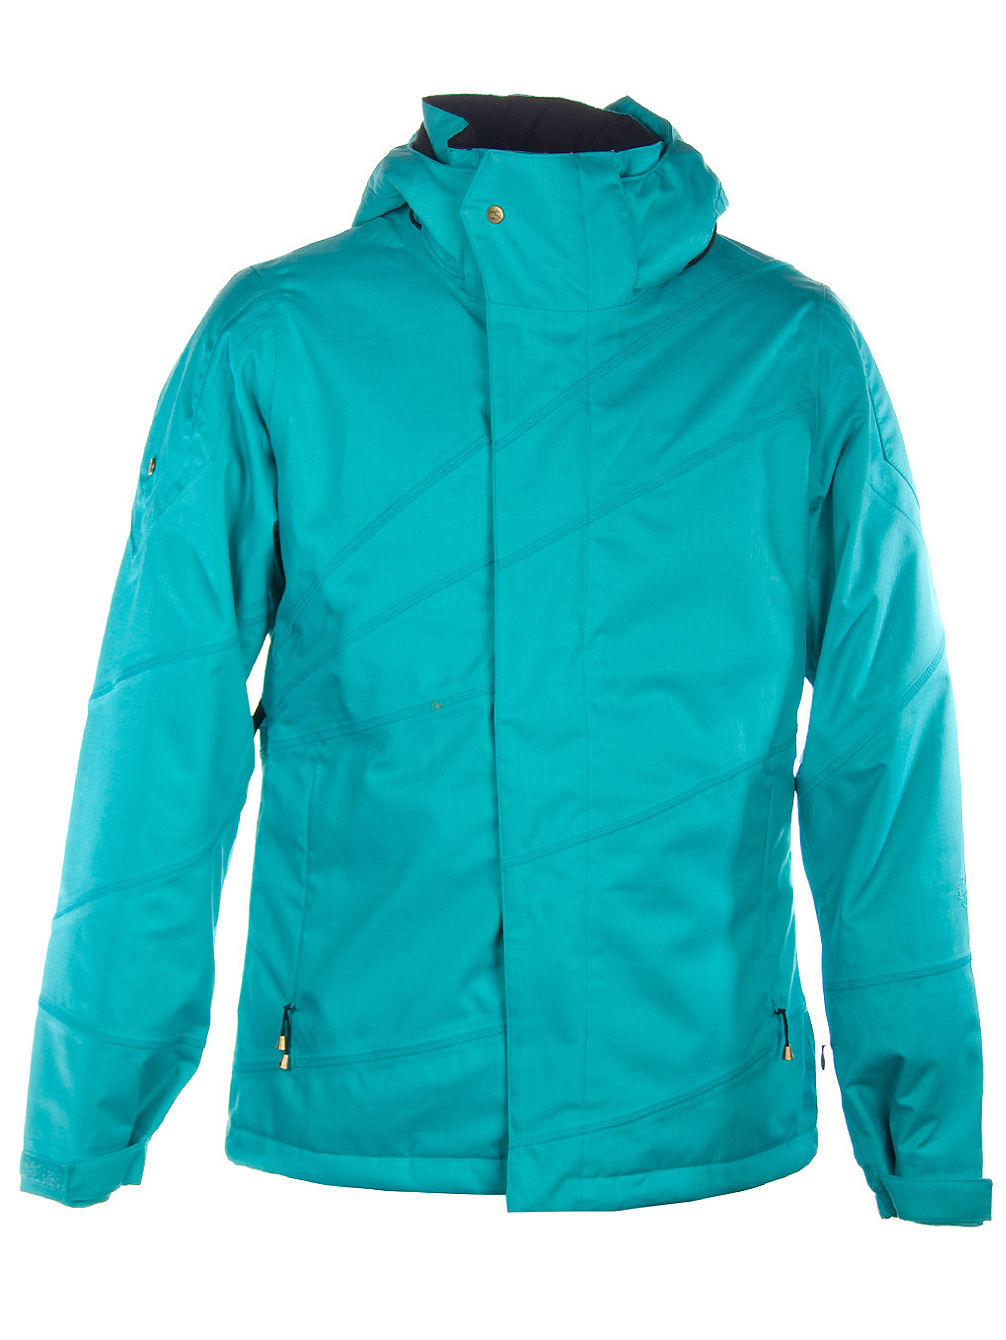 Radiant Jacket Women